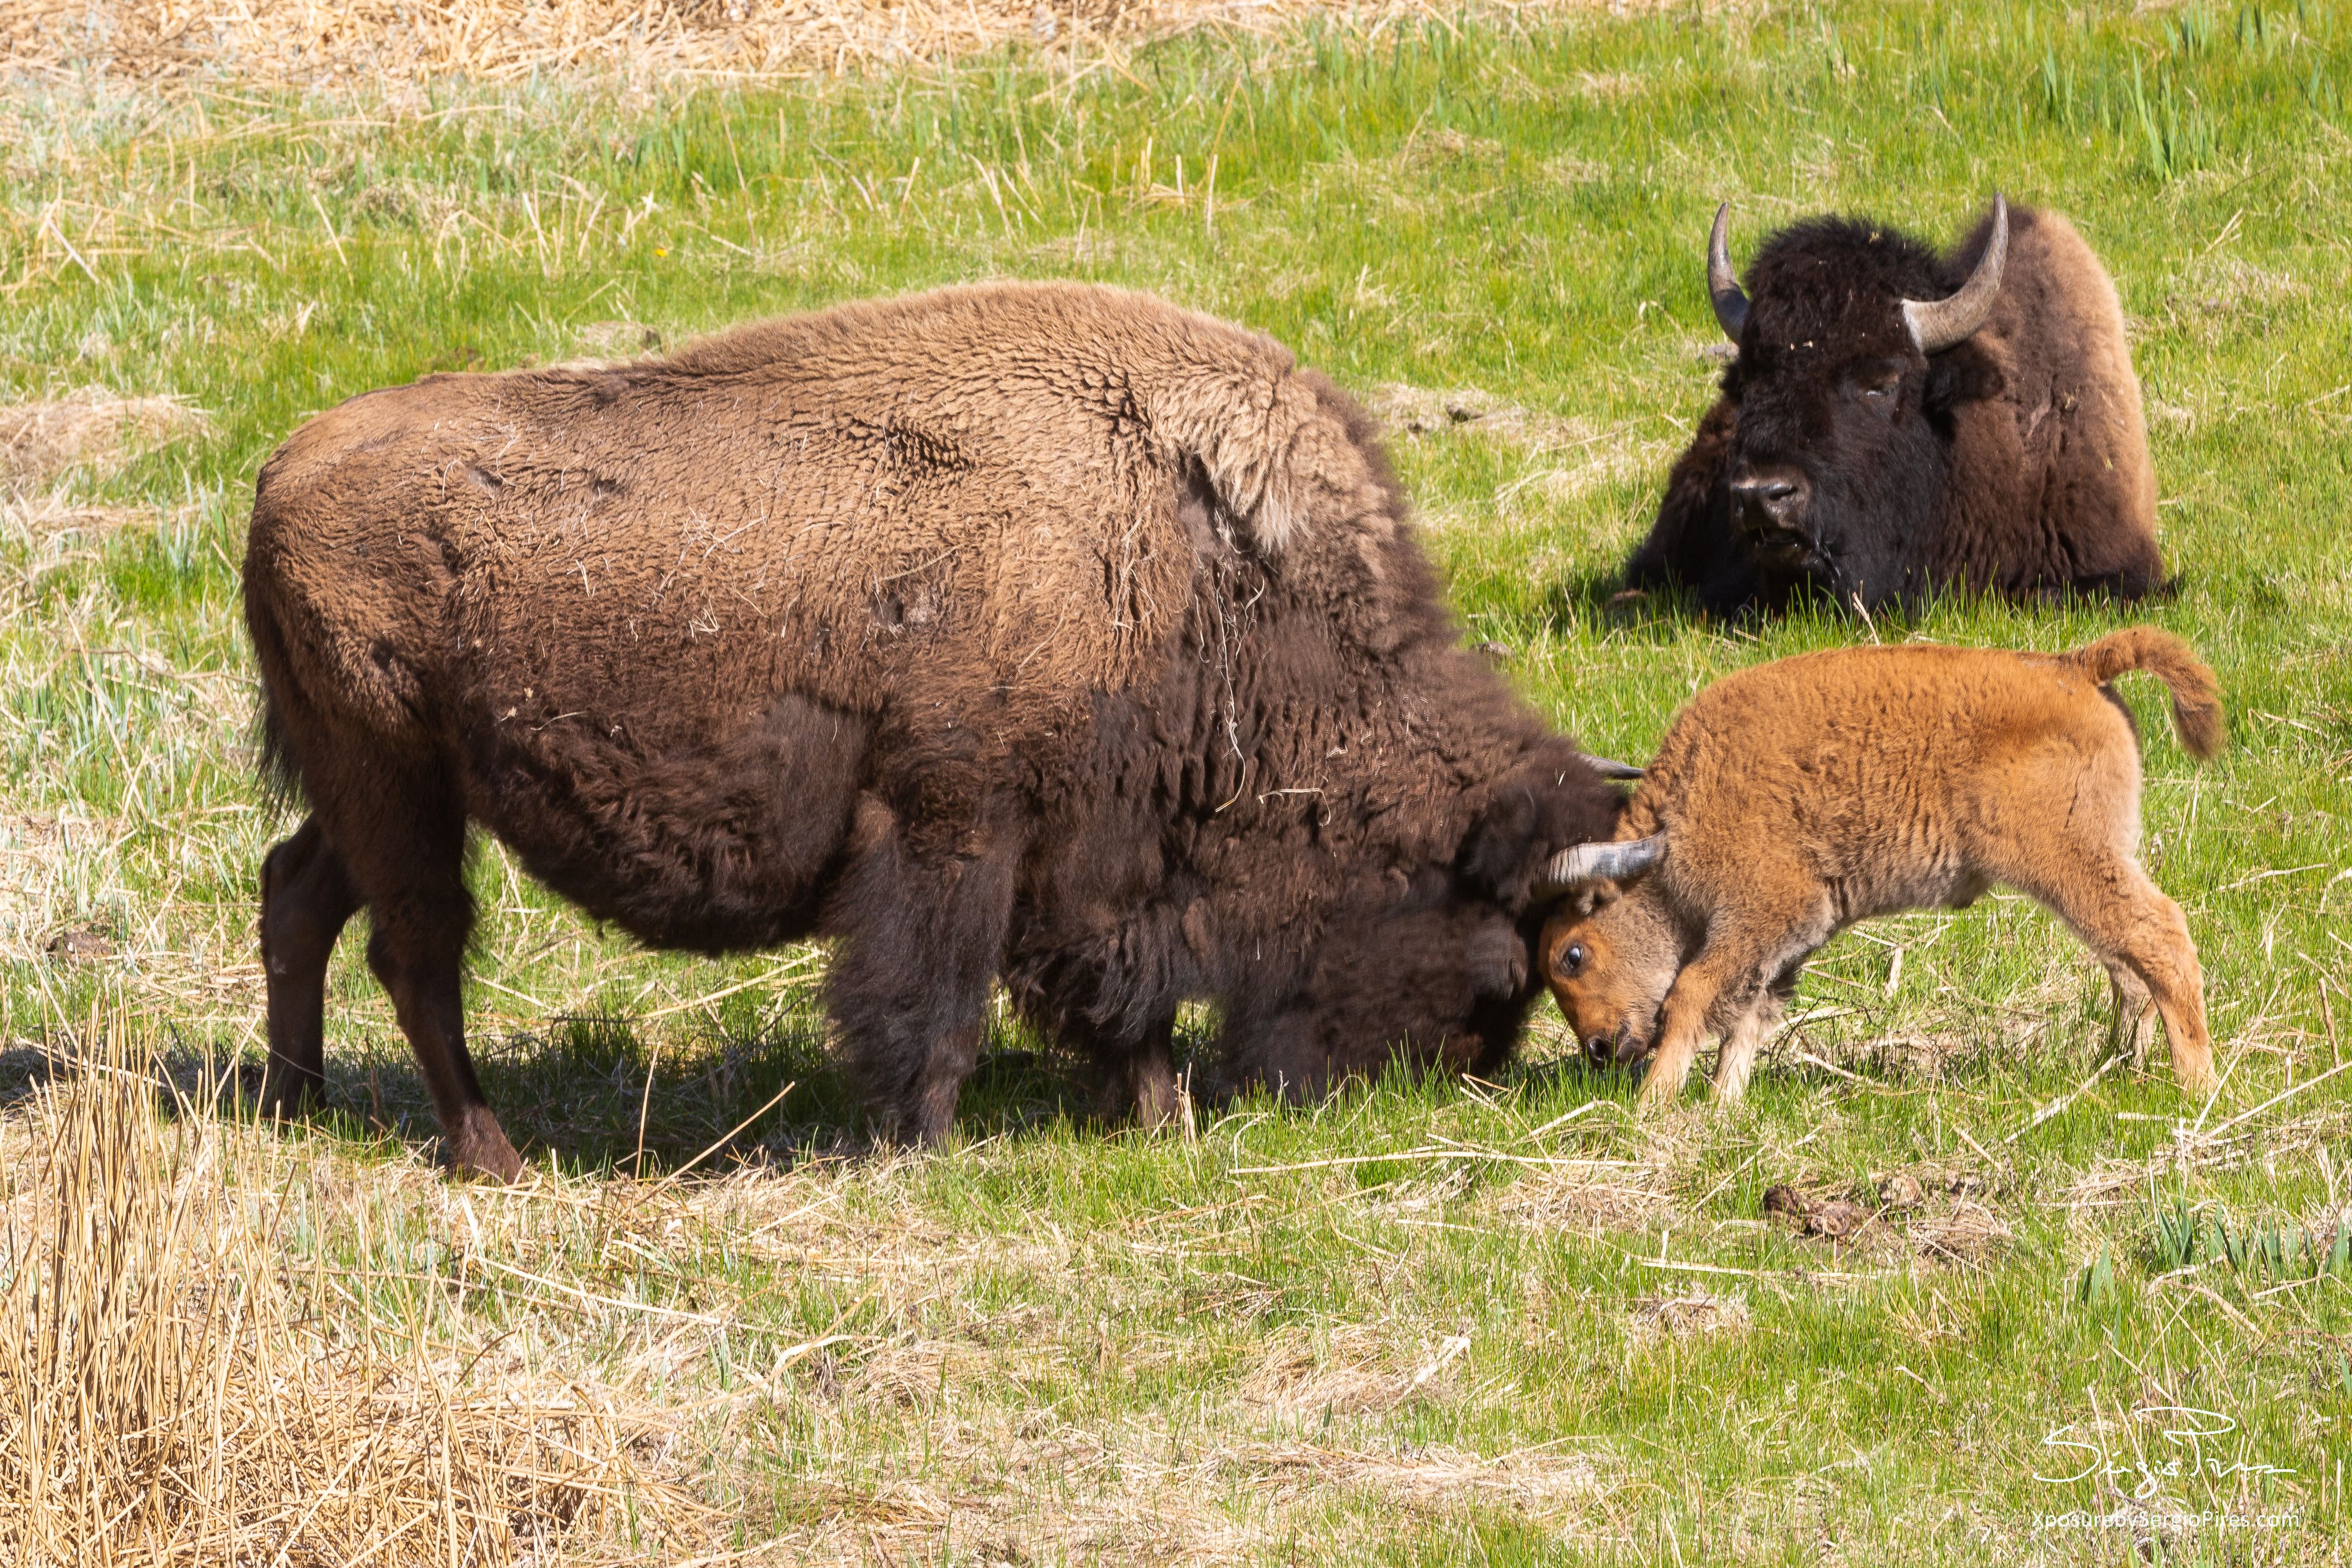 Mama Bison and cub playing